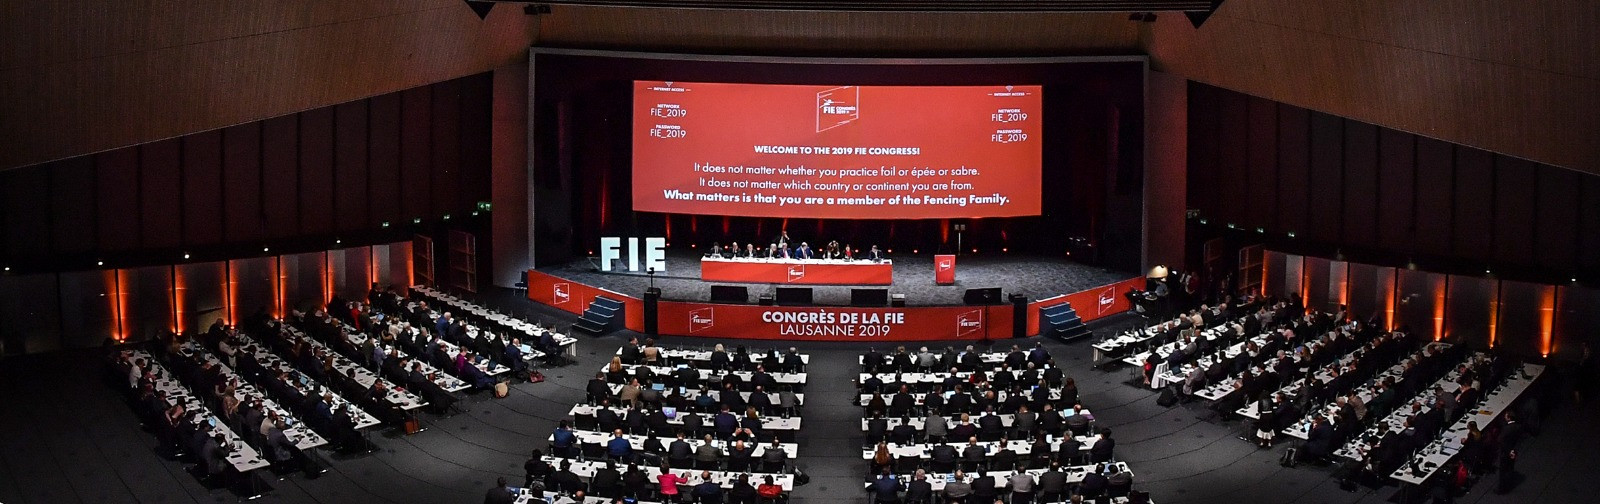 The International Fencing Federation Congress in Lausanne heard that its President Alisher Usmanov gifted it CHF16.34 million last year to help fund 105th anniversary celebrations ©FIE